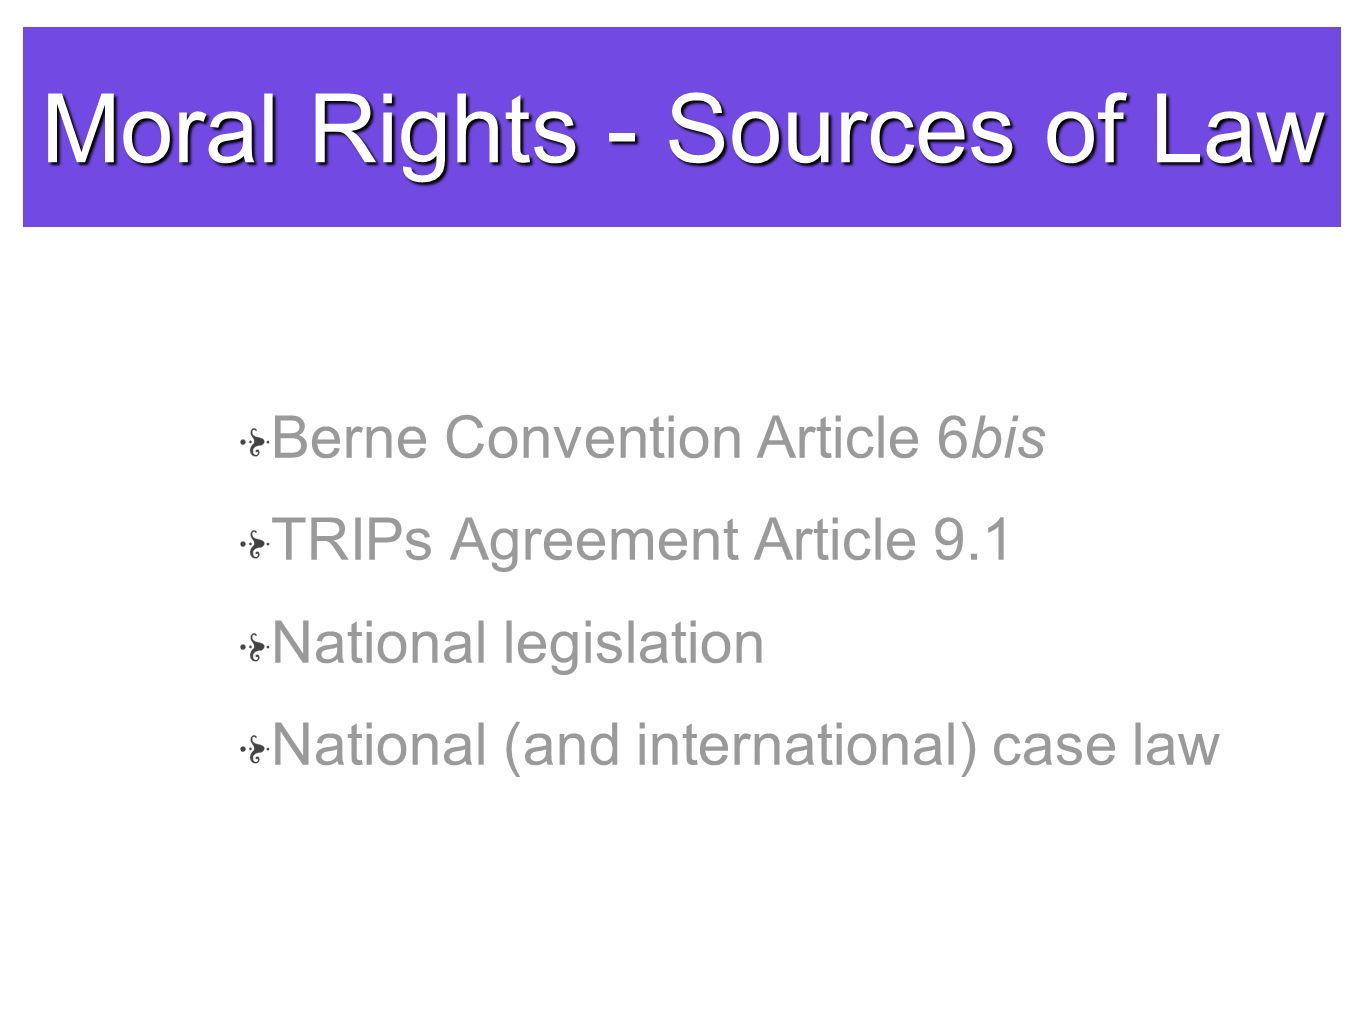 Moral Rights - Sources of Law